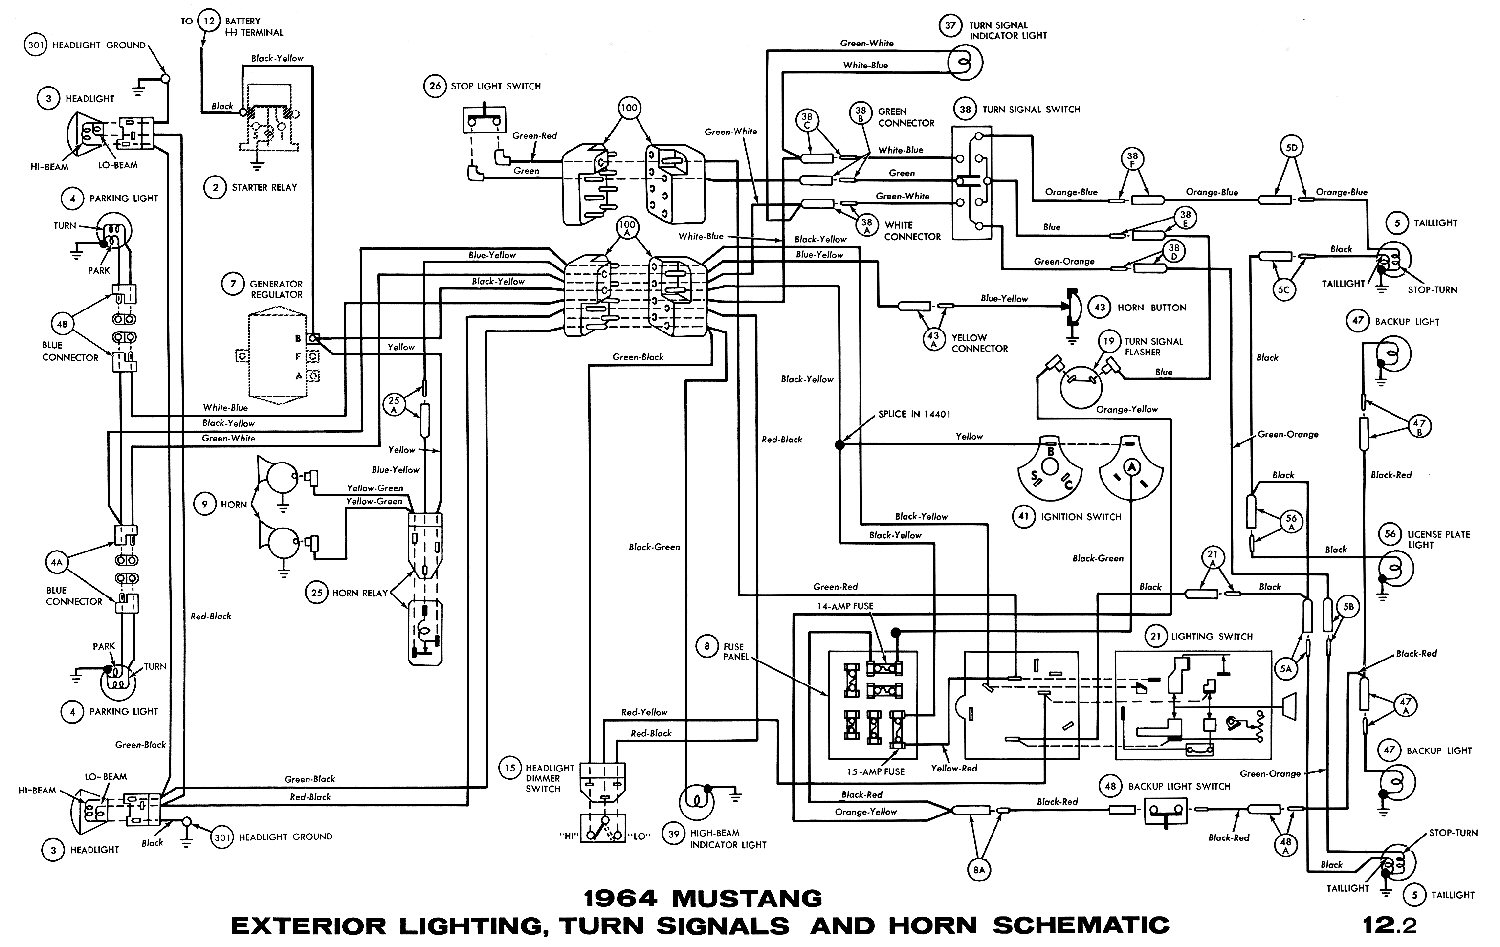 1964i 1964 mustang wiring diagrams average joe restoration 93 mustang turn signal wiring diagram at aneh.co